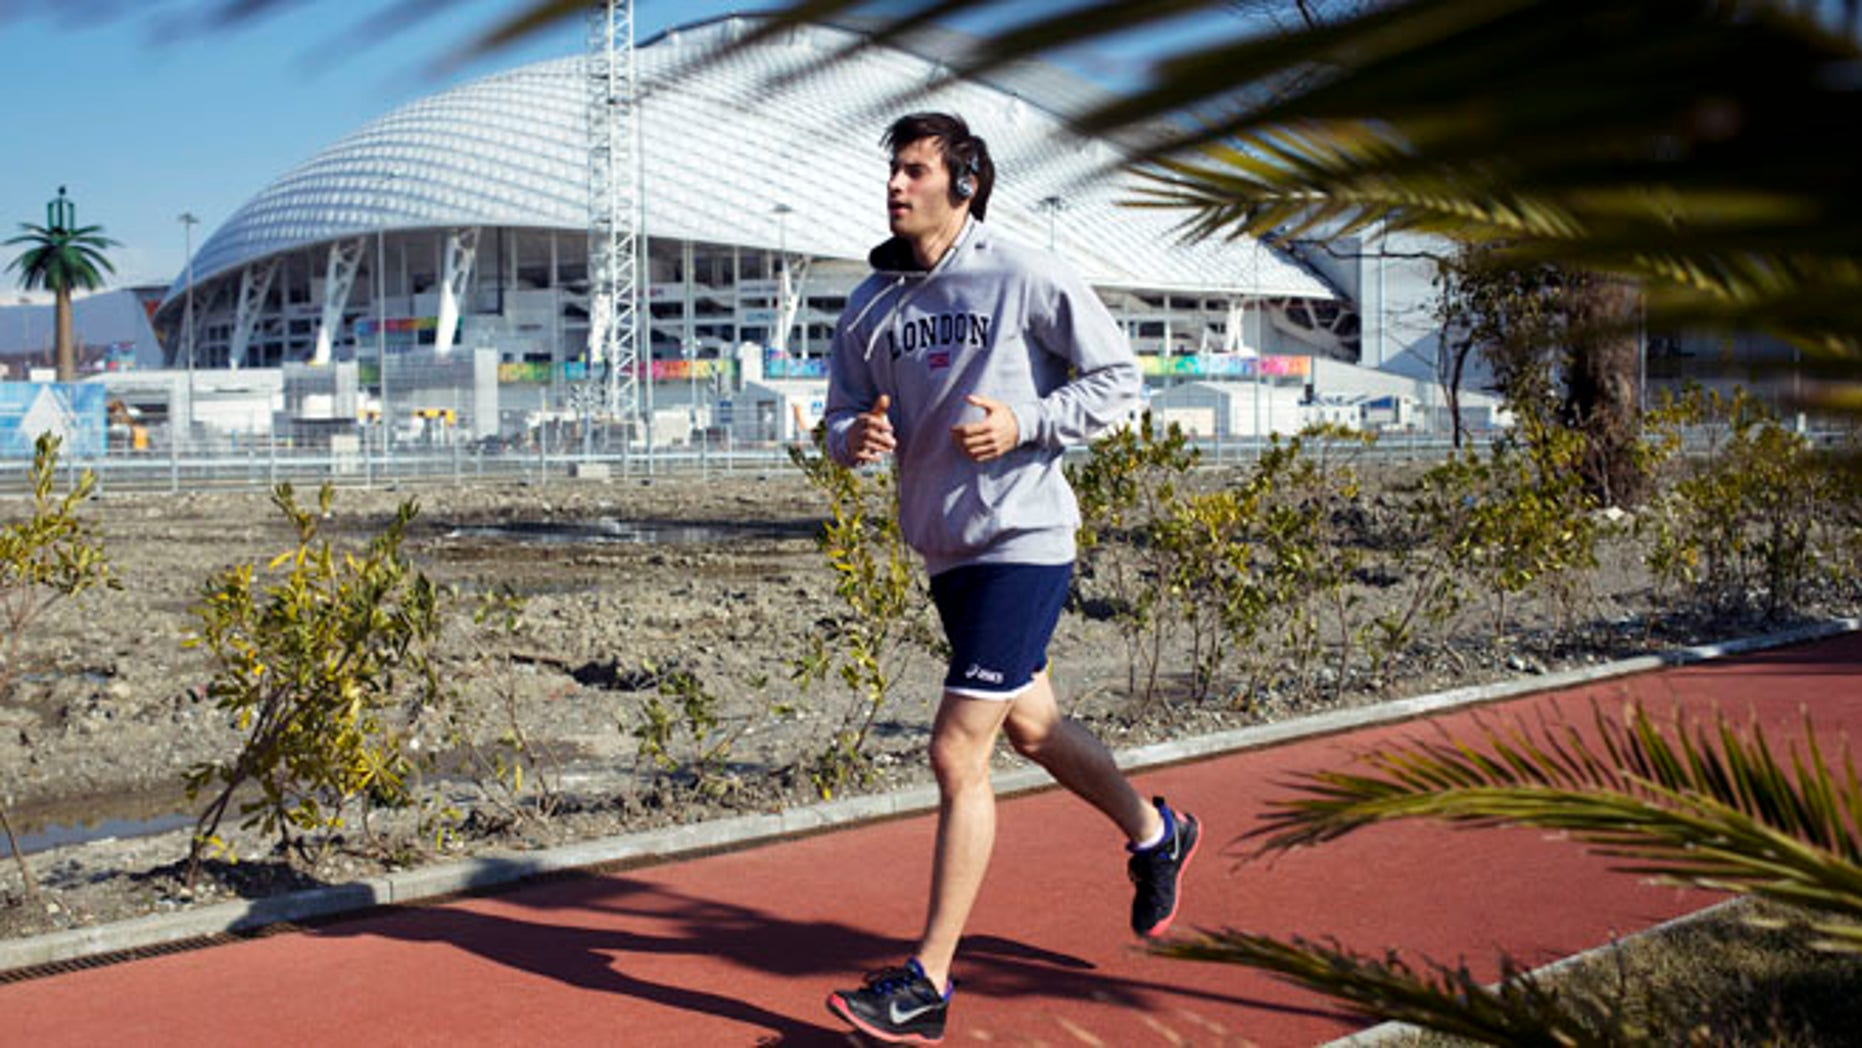 Feb. 10, 2014: A man runs at a boardwalk near the Fisht Olympic Stadium in Olympic Park during the 2014 Winter Olympics in Sochi, Russia.